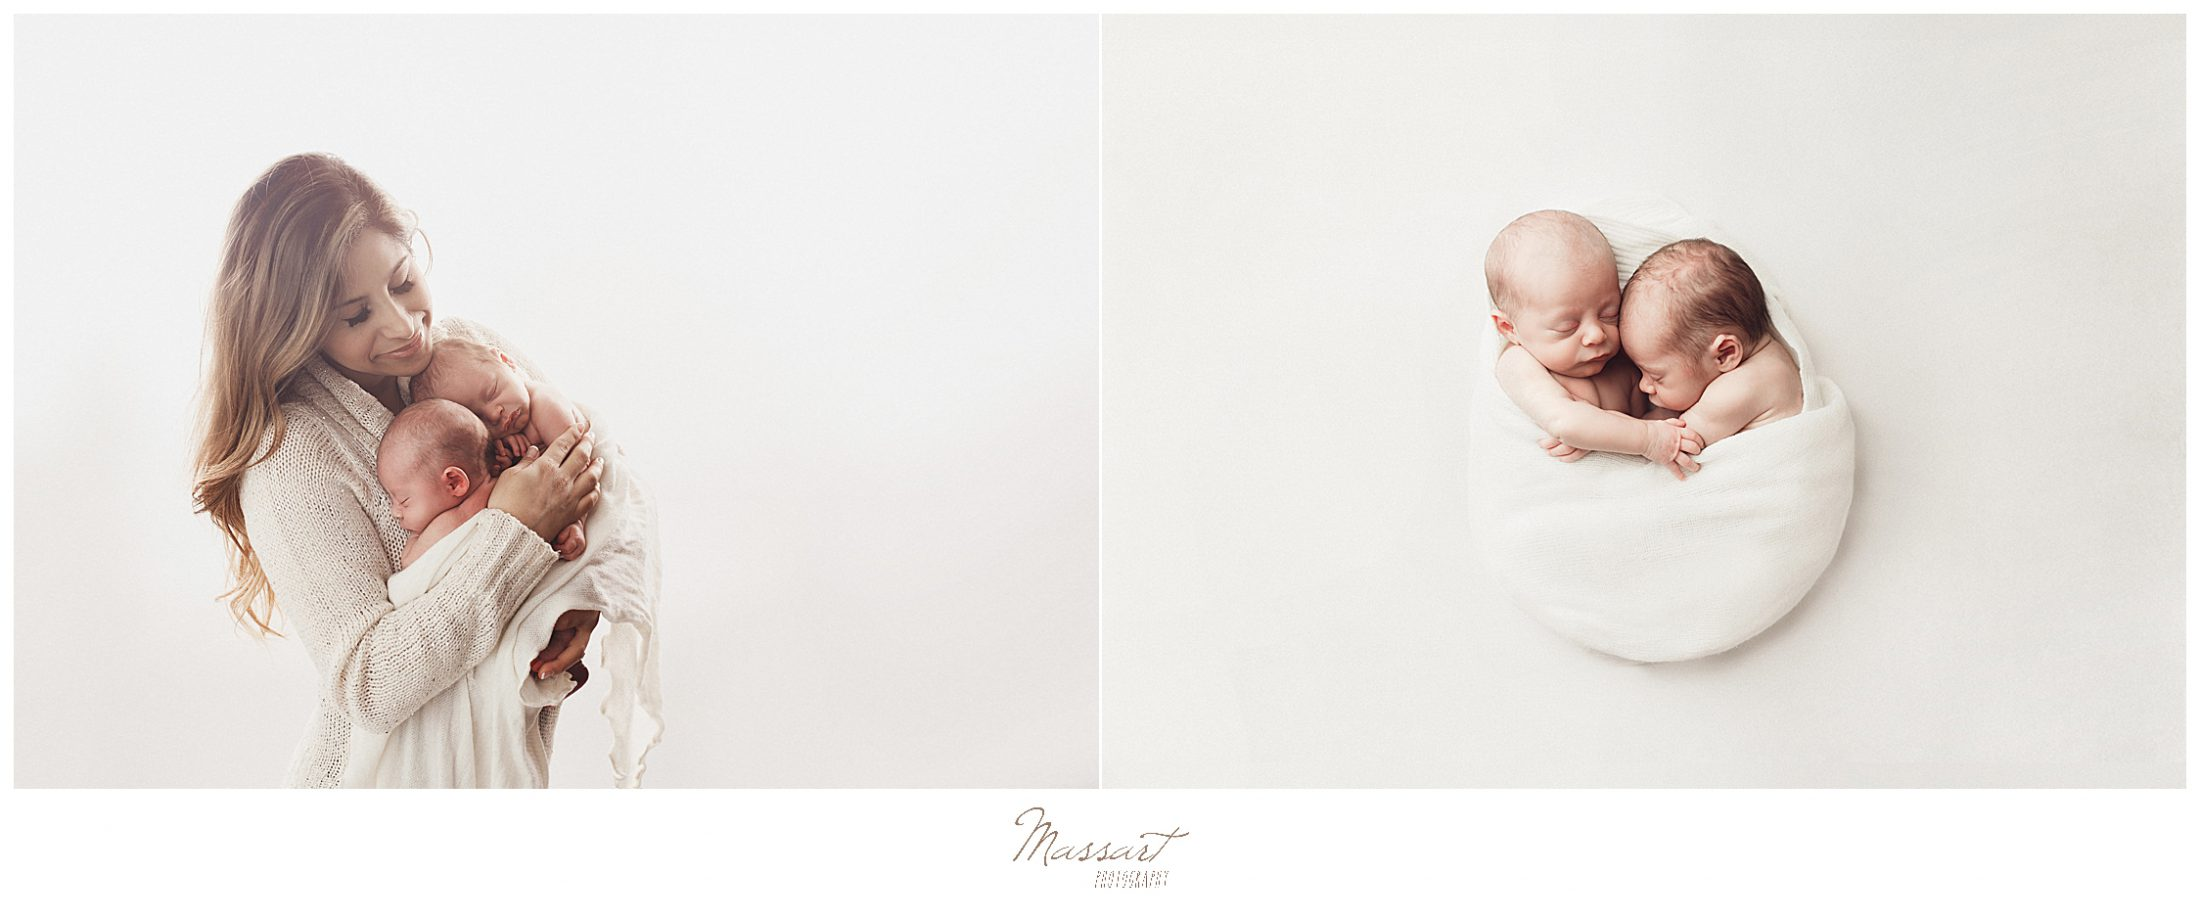 Portrait of twins during a baby photoshoot in Rhode Island